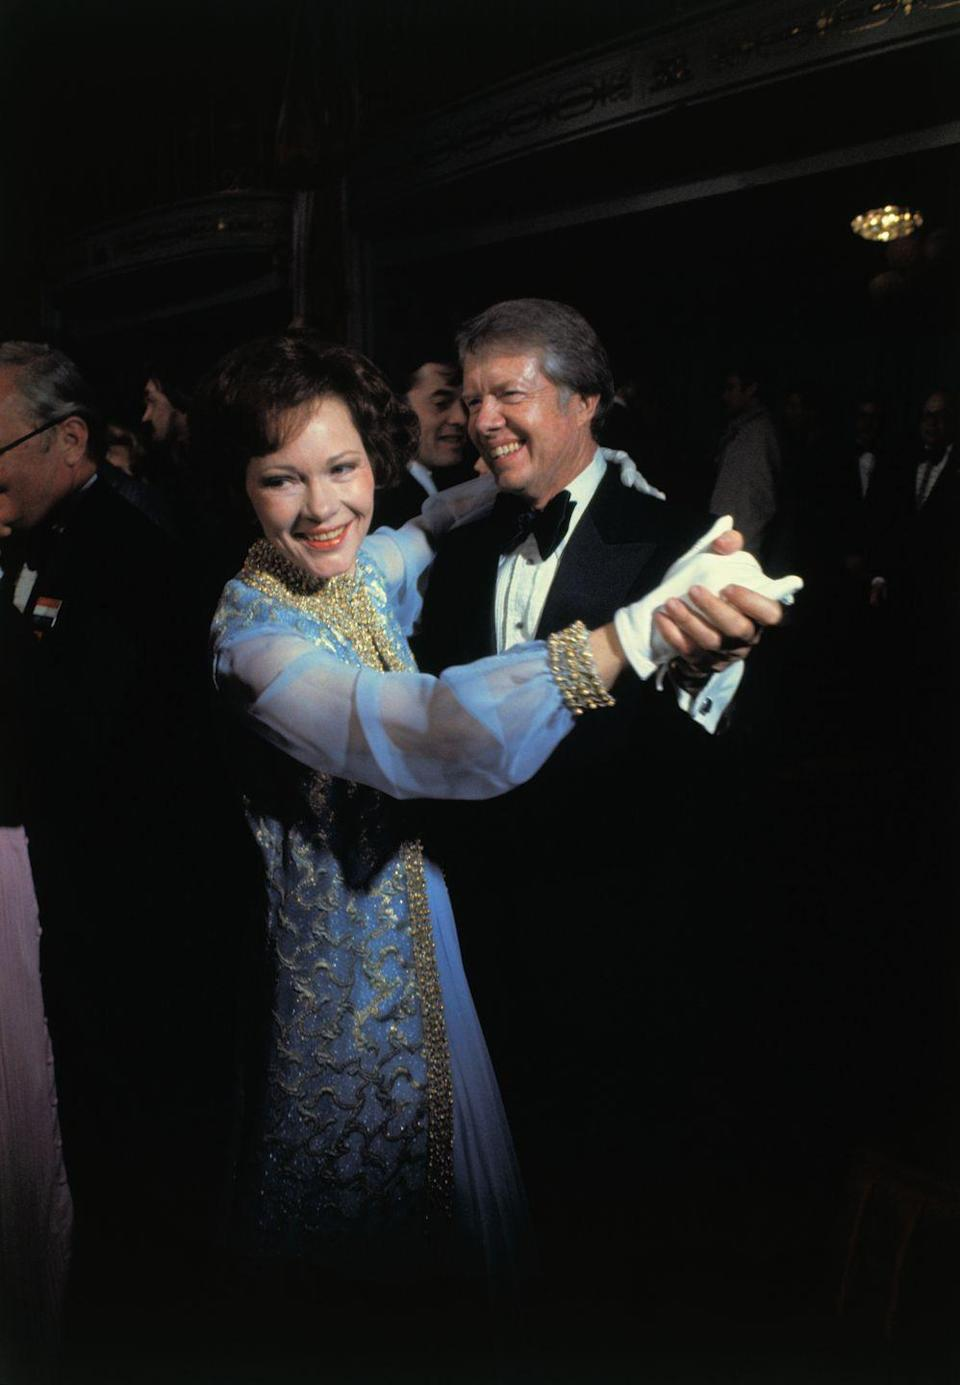 "<p>Before sustainability became a trend, Rosalynn Carter wore this blue dress with gold trim for President Jimmy Carter's 1977 Inaugural Ball. According to <a href=""http://style.time.com/2013/01/18/belles-of-the-ball-an-insiders-look-at-inaugural-gowns/slide/rosalynn-carter-1977-something-old-something-new/"" rel=""nofollow noopener"" target=""_blank"" data-ylk=""slk:Time"" class=""link rapid-noclick-resp""><em>Time</em></a><em>,</em> she had worn the dress publicly two times before the event, thus making this her third appearance in the outfit. This raised many eyebrows because she chose such a high-profile event to be an outfit repeater. </p>"